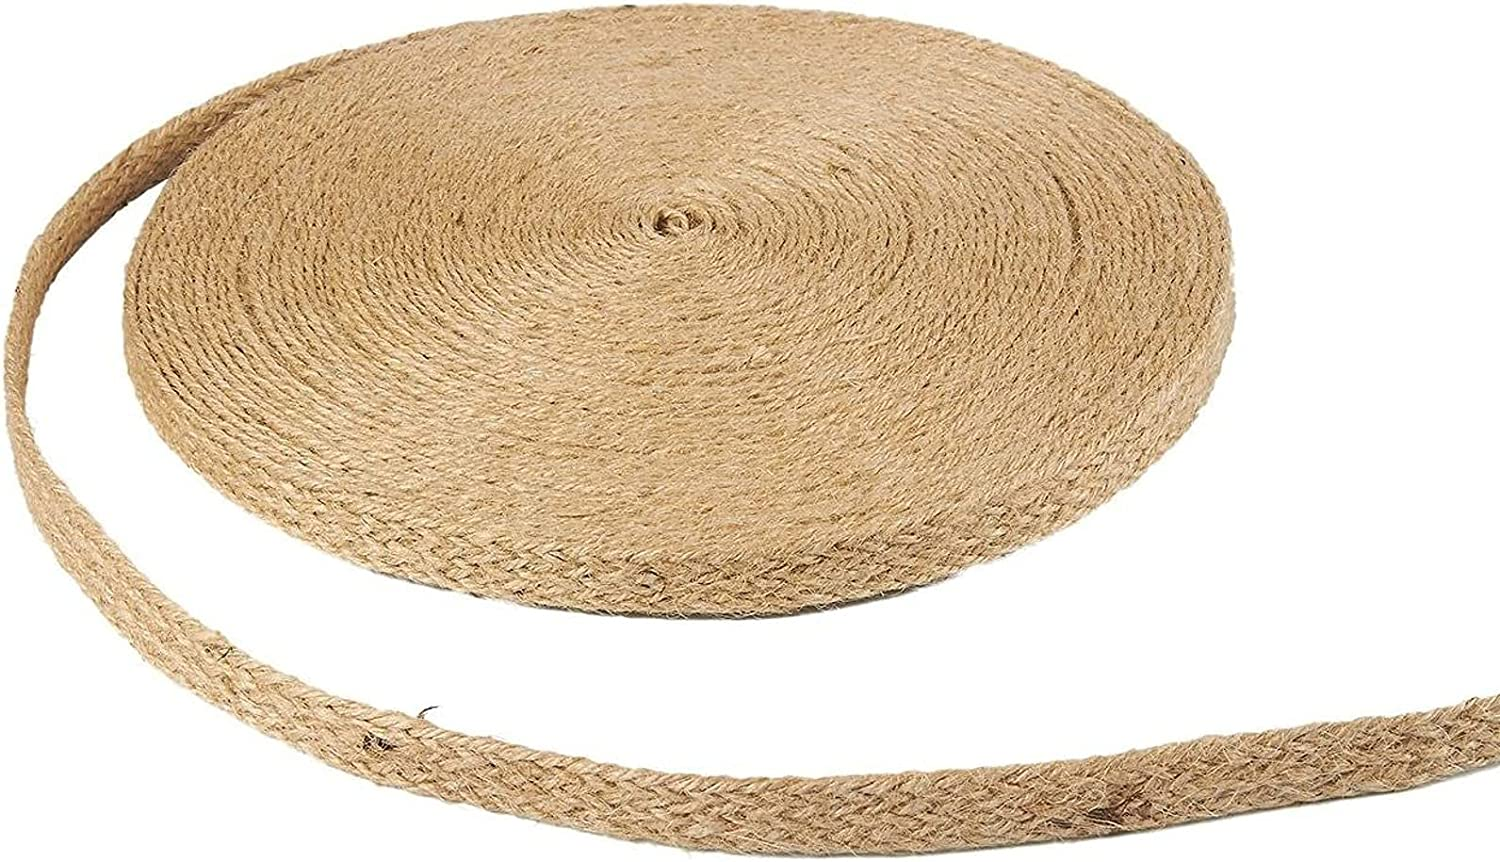 Jute High order 5% OFF Ribbon Roll Burlap Upholstery Trim x 23 0.6 Yards Inches